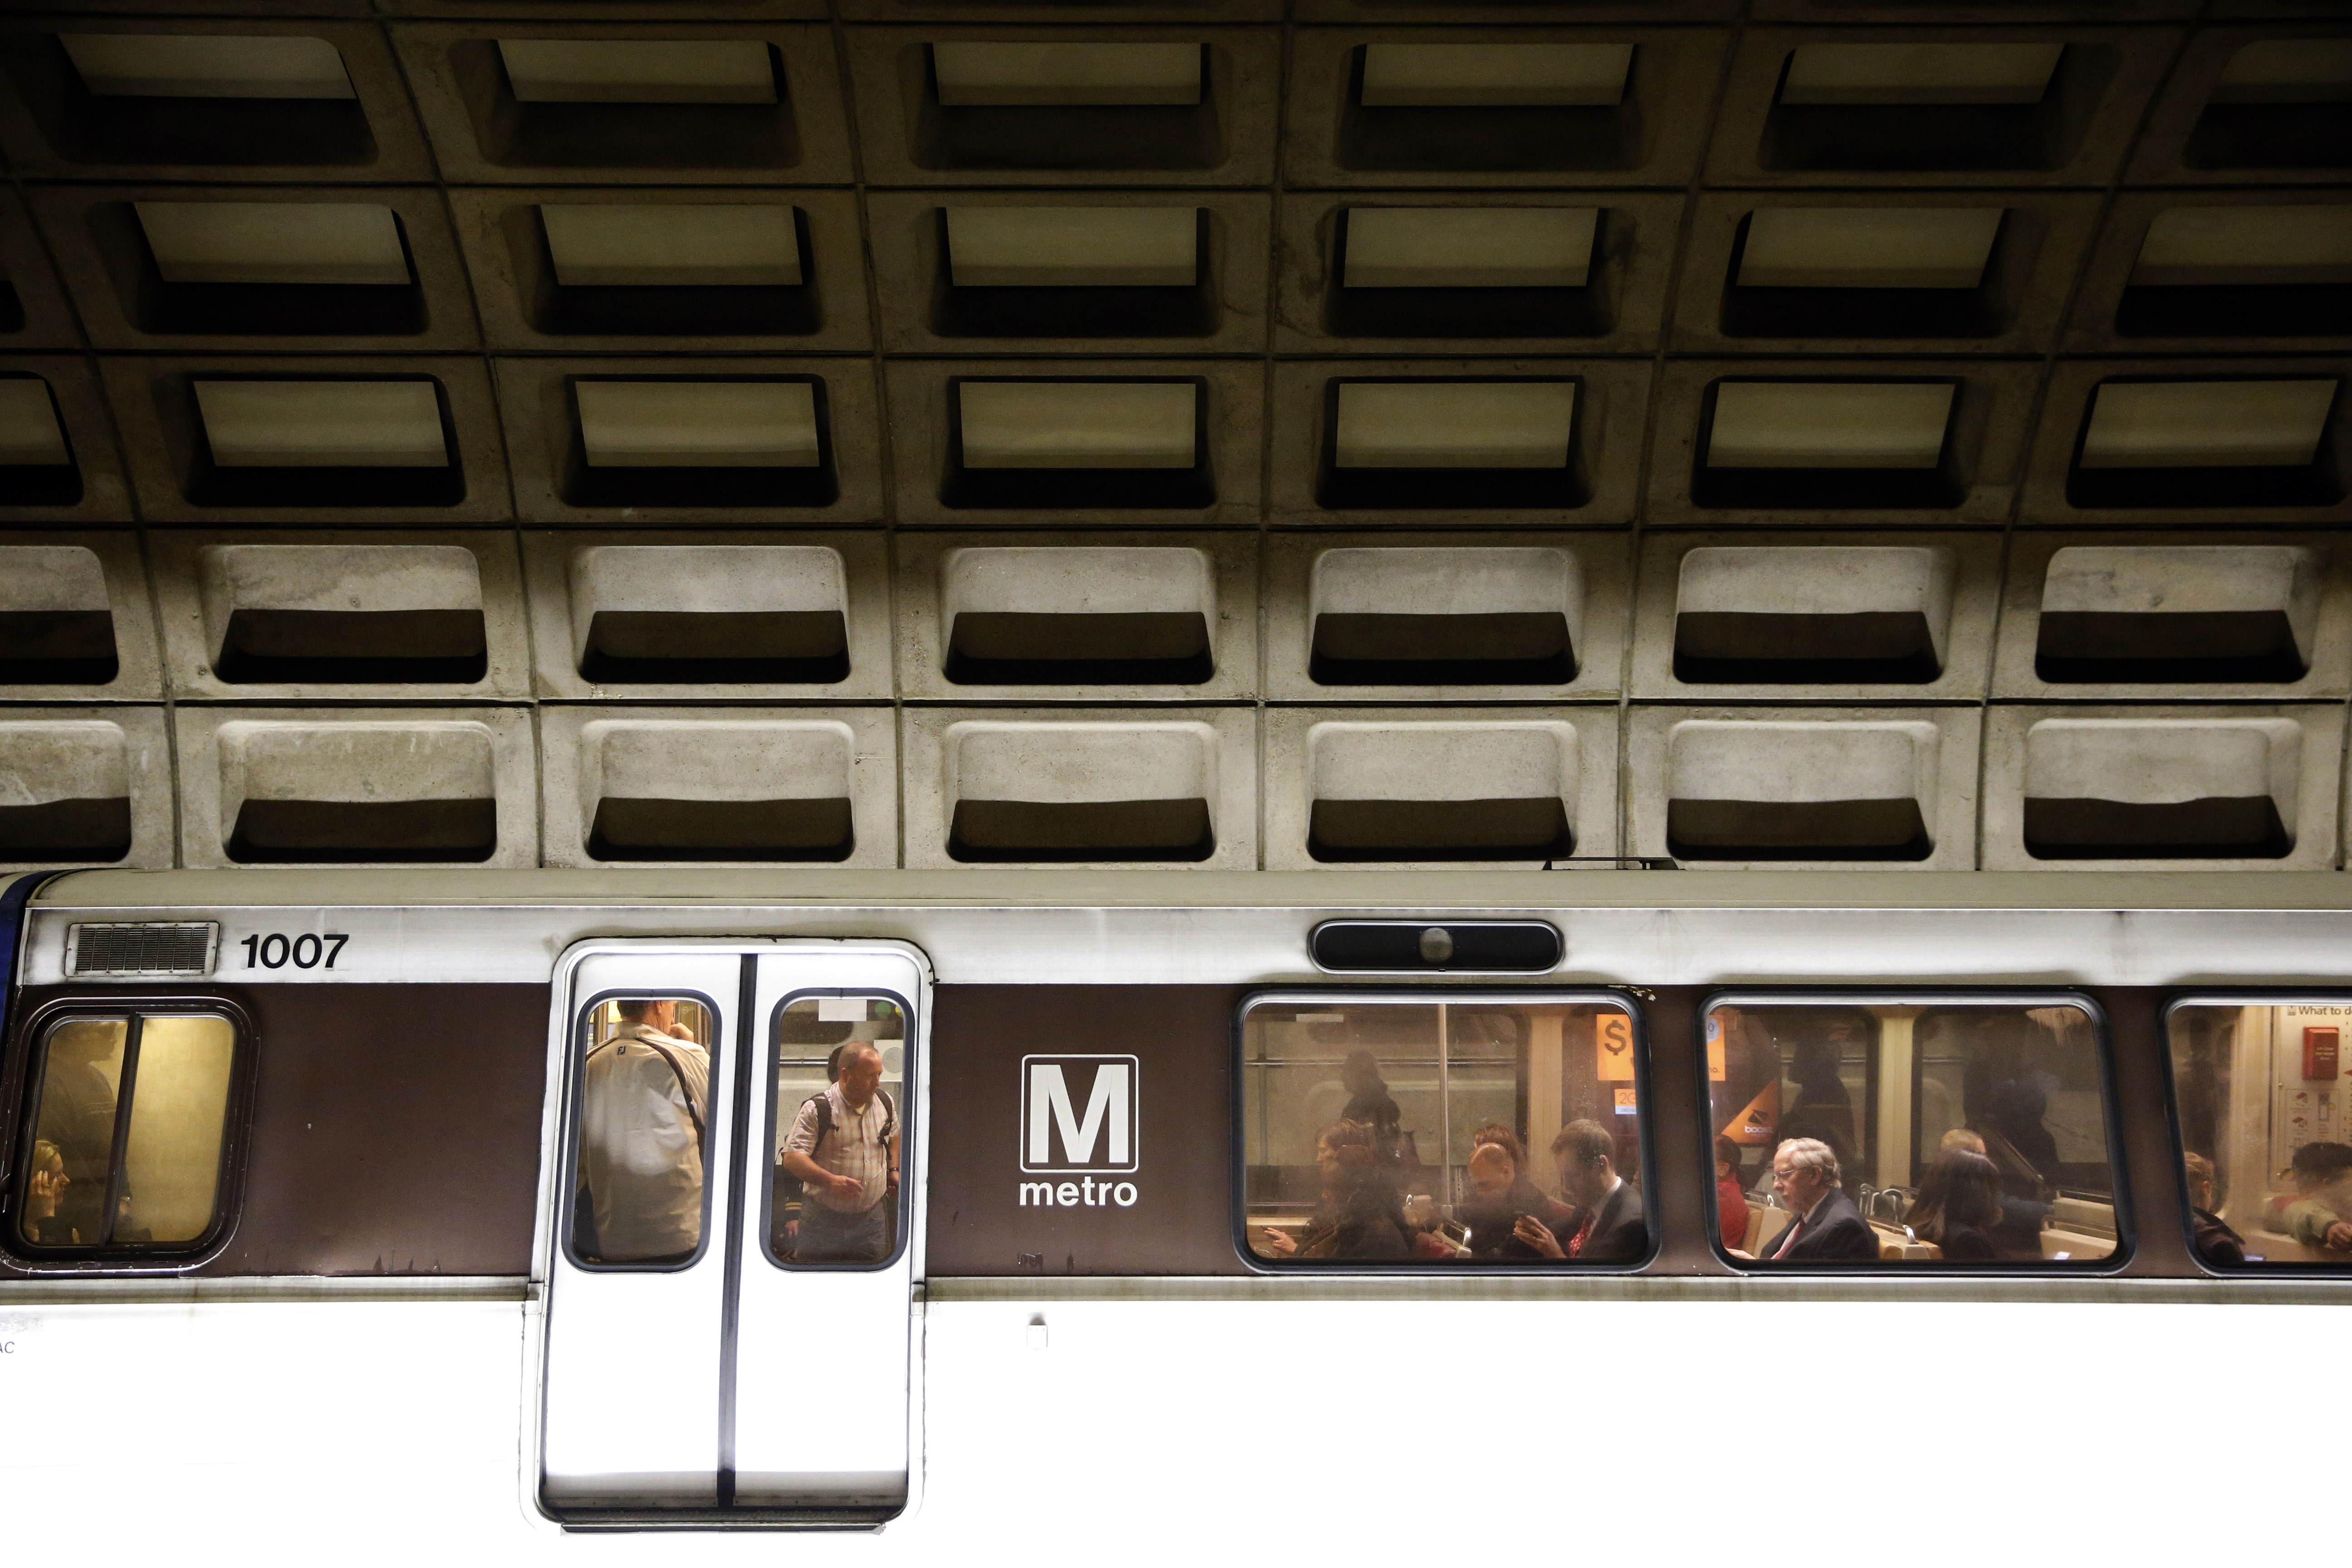 Metro safety, delays challenged at congressional hearing